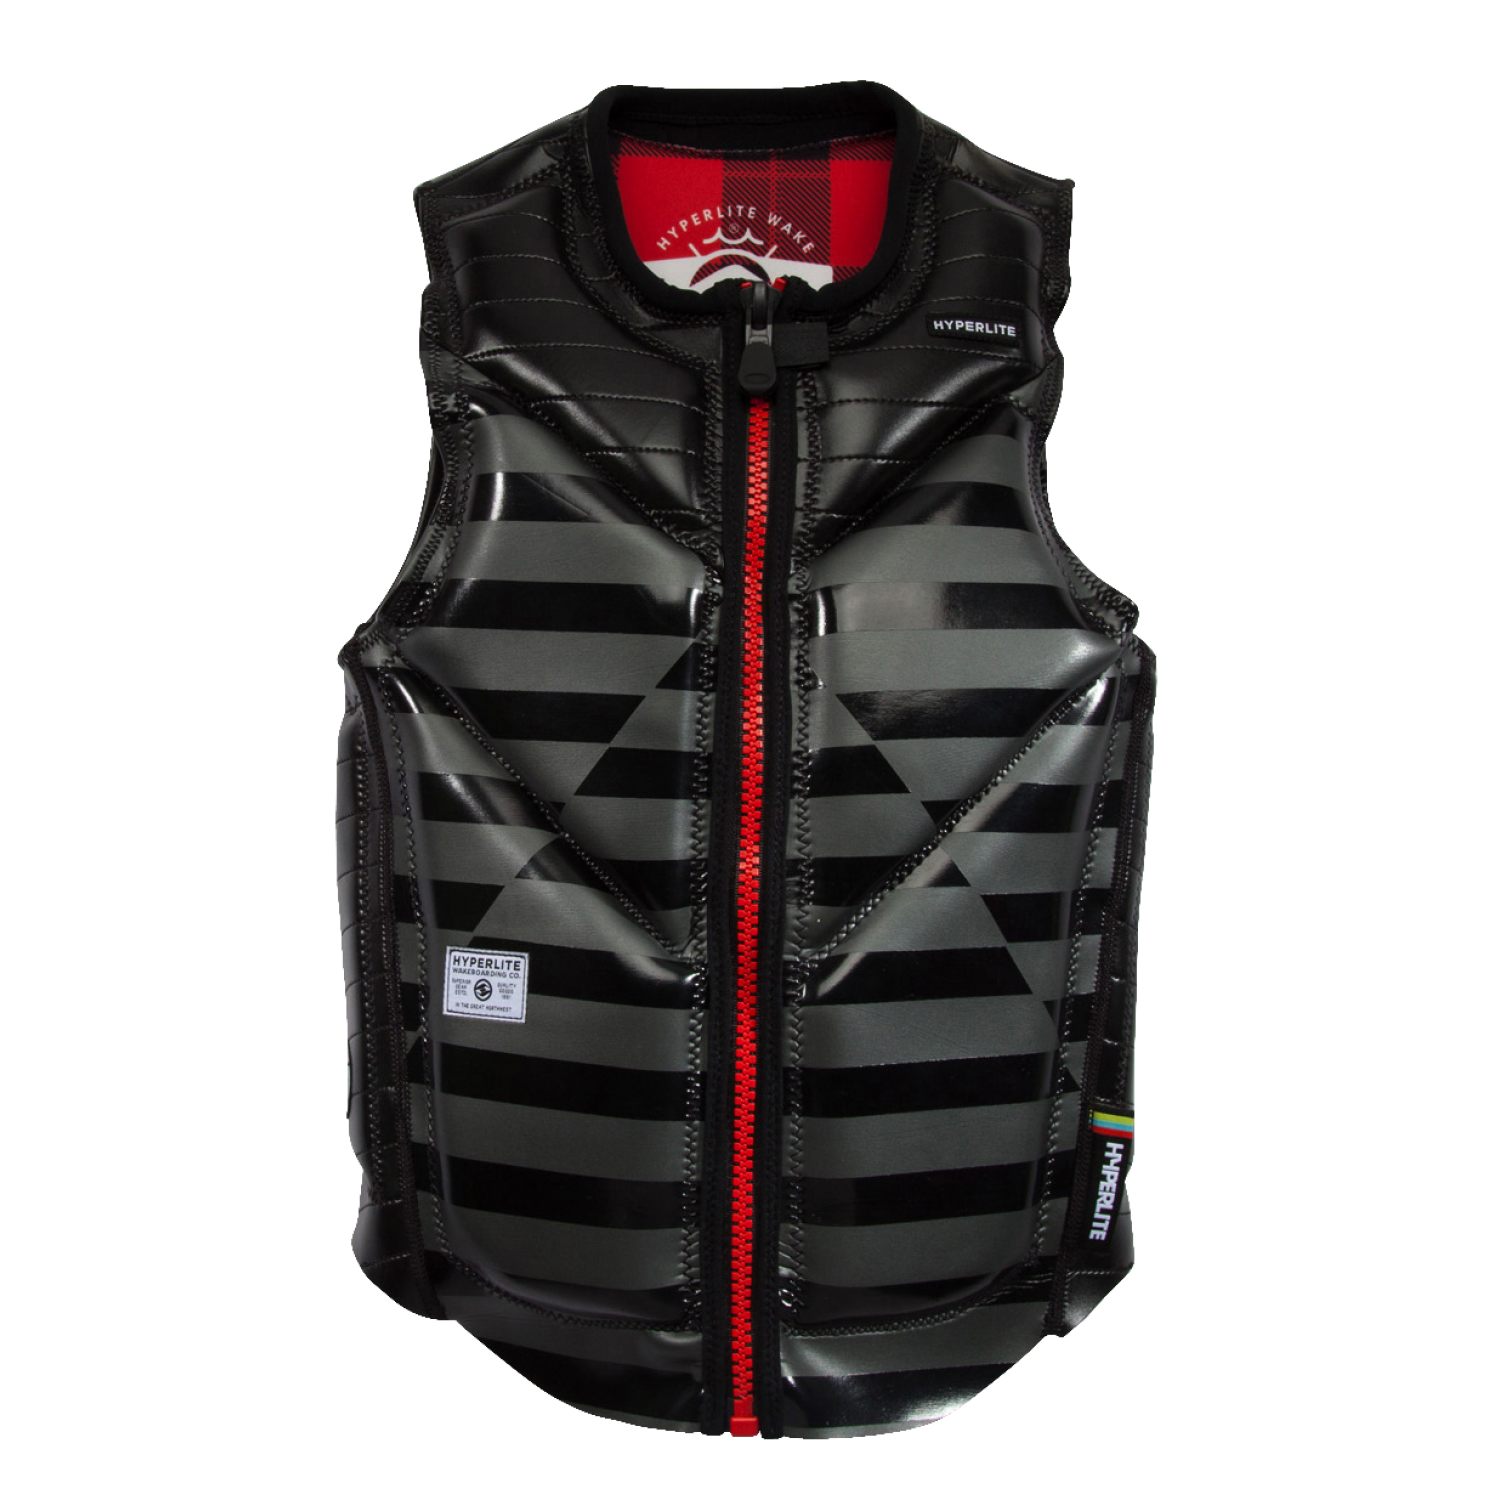 Life Jacket Size chart for Major Brands